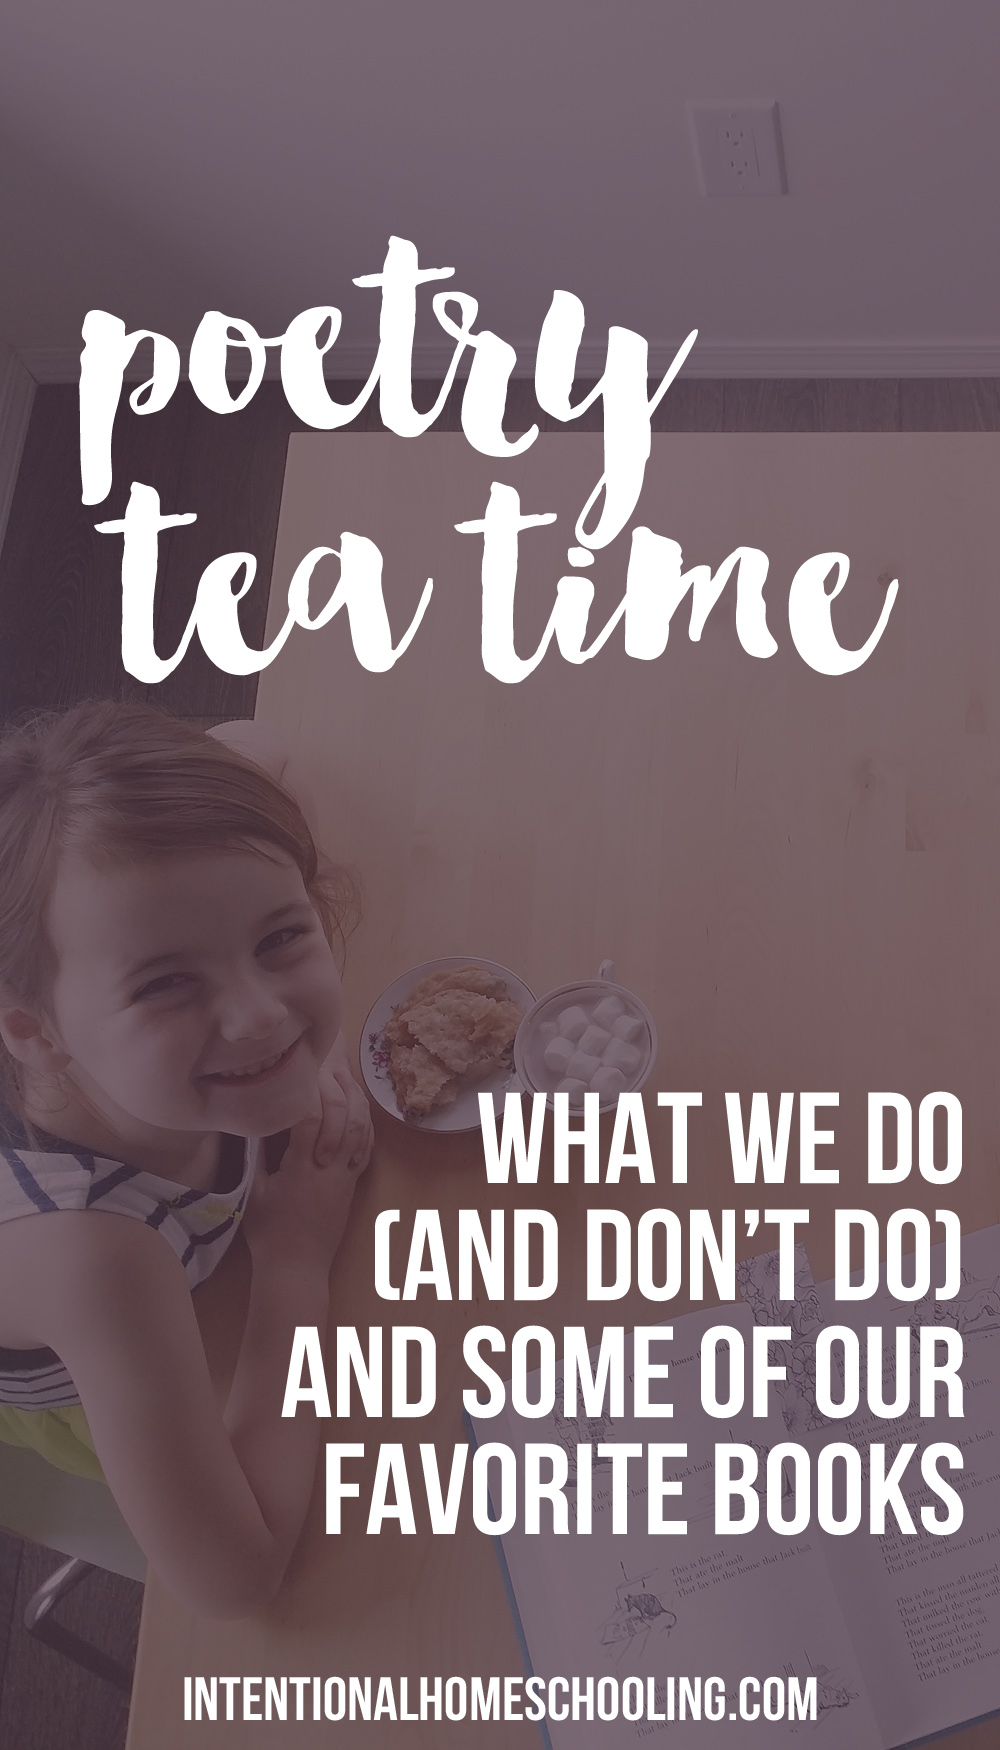 Poetry Tea Time in Our Homeschool - it's not perfect but we love it!